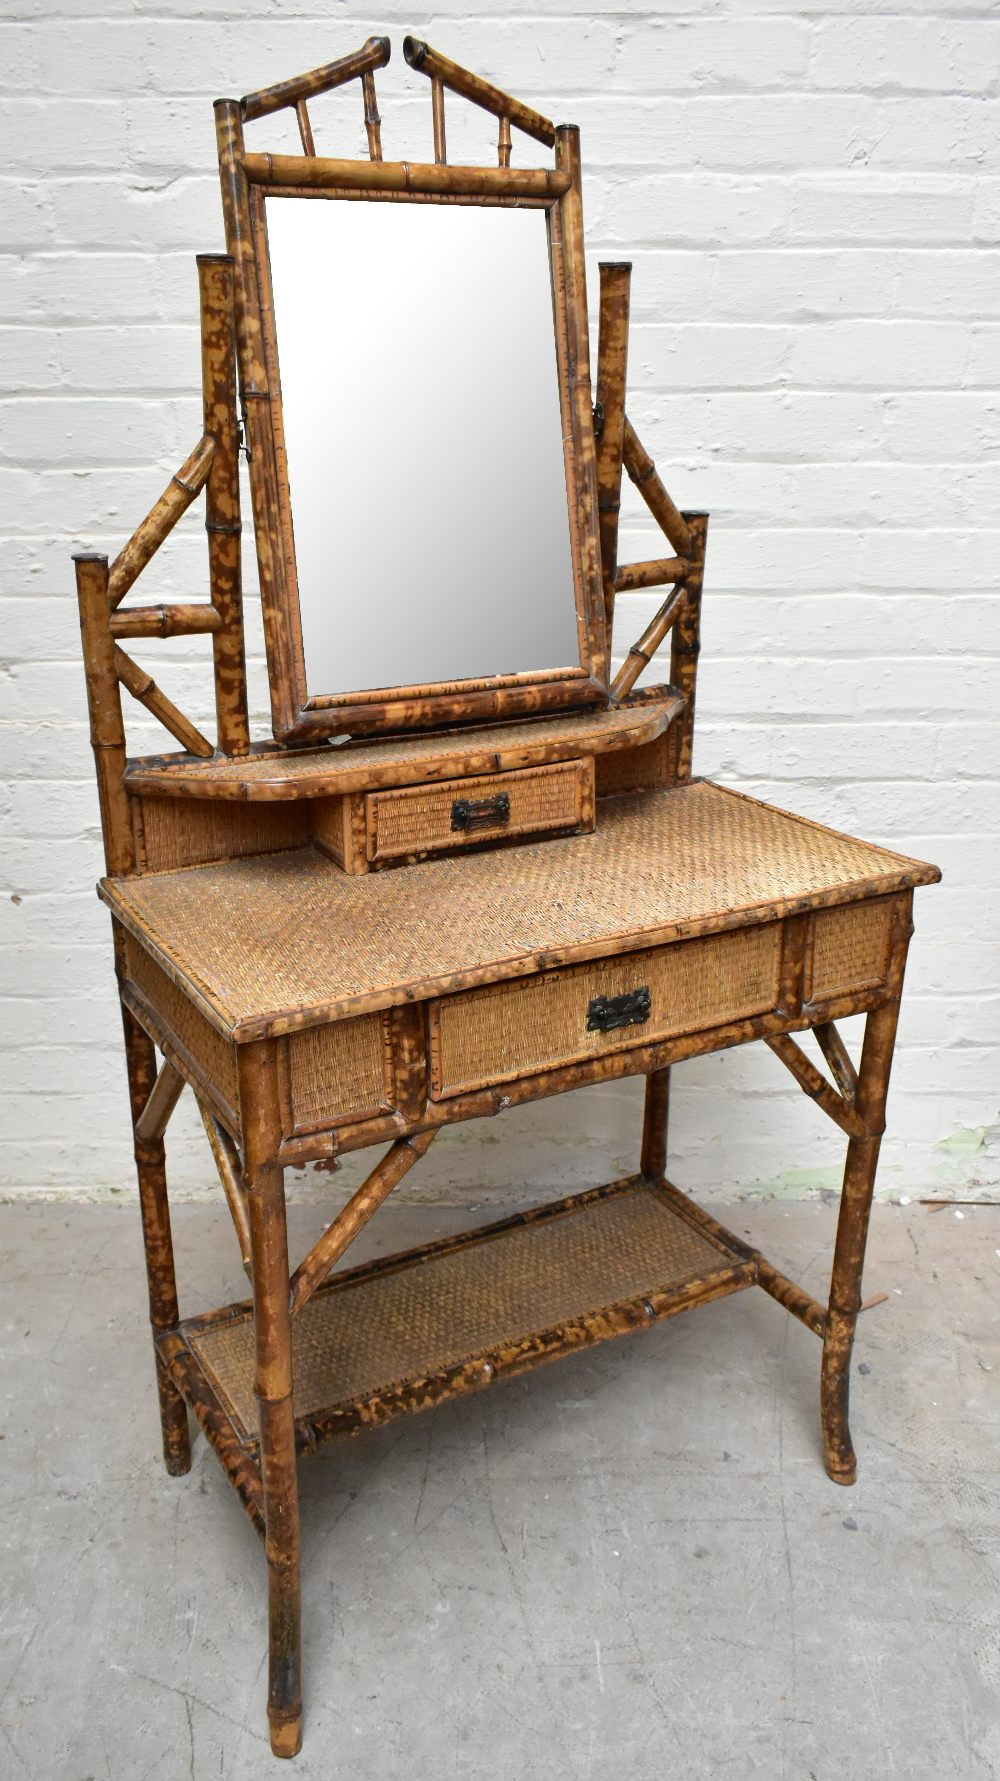 An early 20th century bamboo mirror back dressing table, with two drawers raised on column supports,